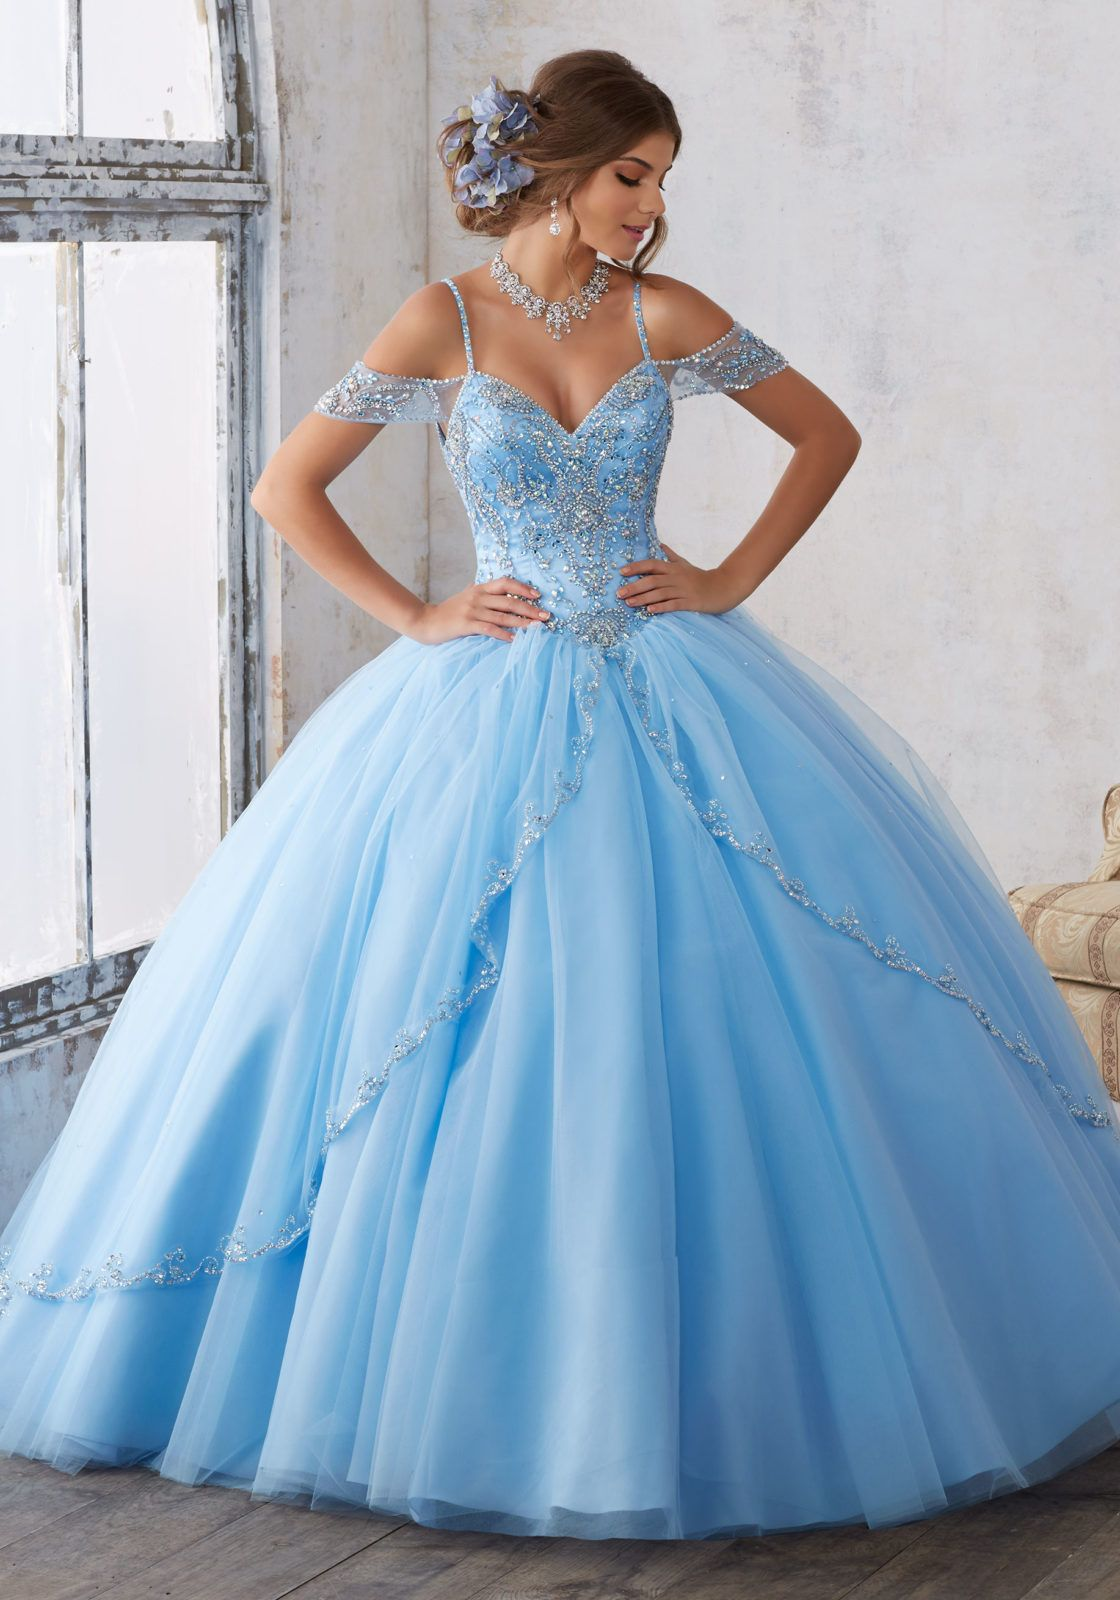 15 stylish quinceanera dresses with sleeves cinderella dresses 15 stylish quinceanera dresses with sleeves ombrellifo Images